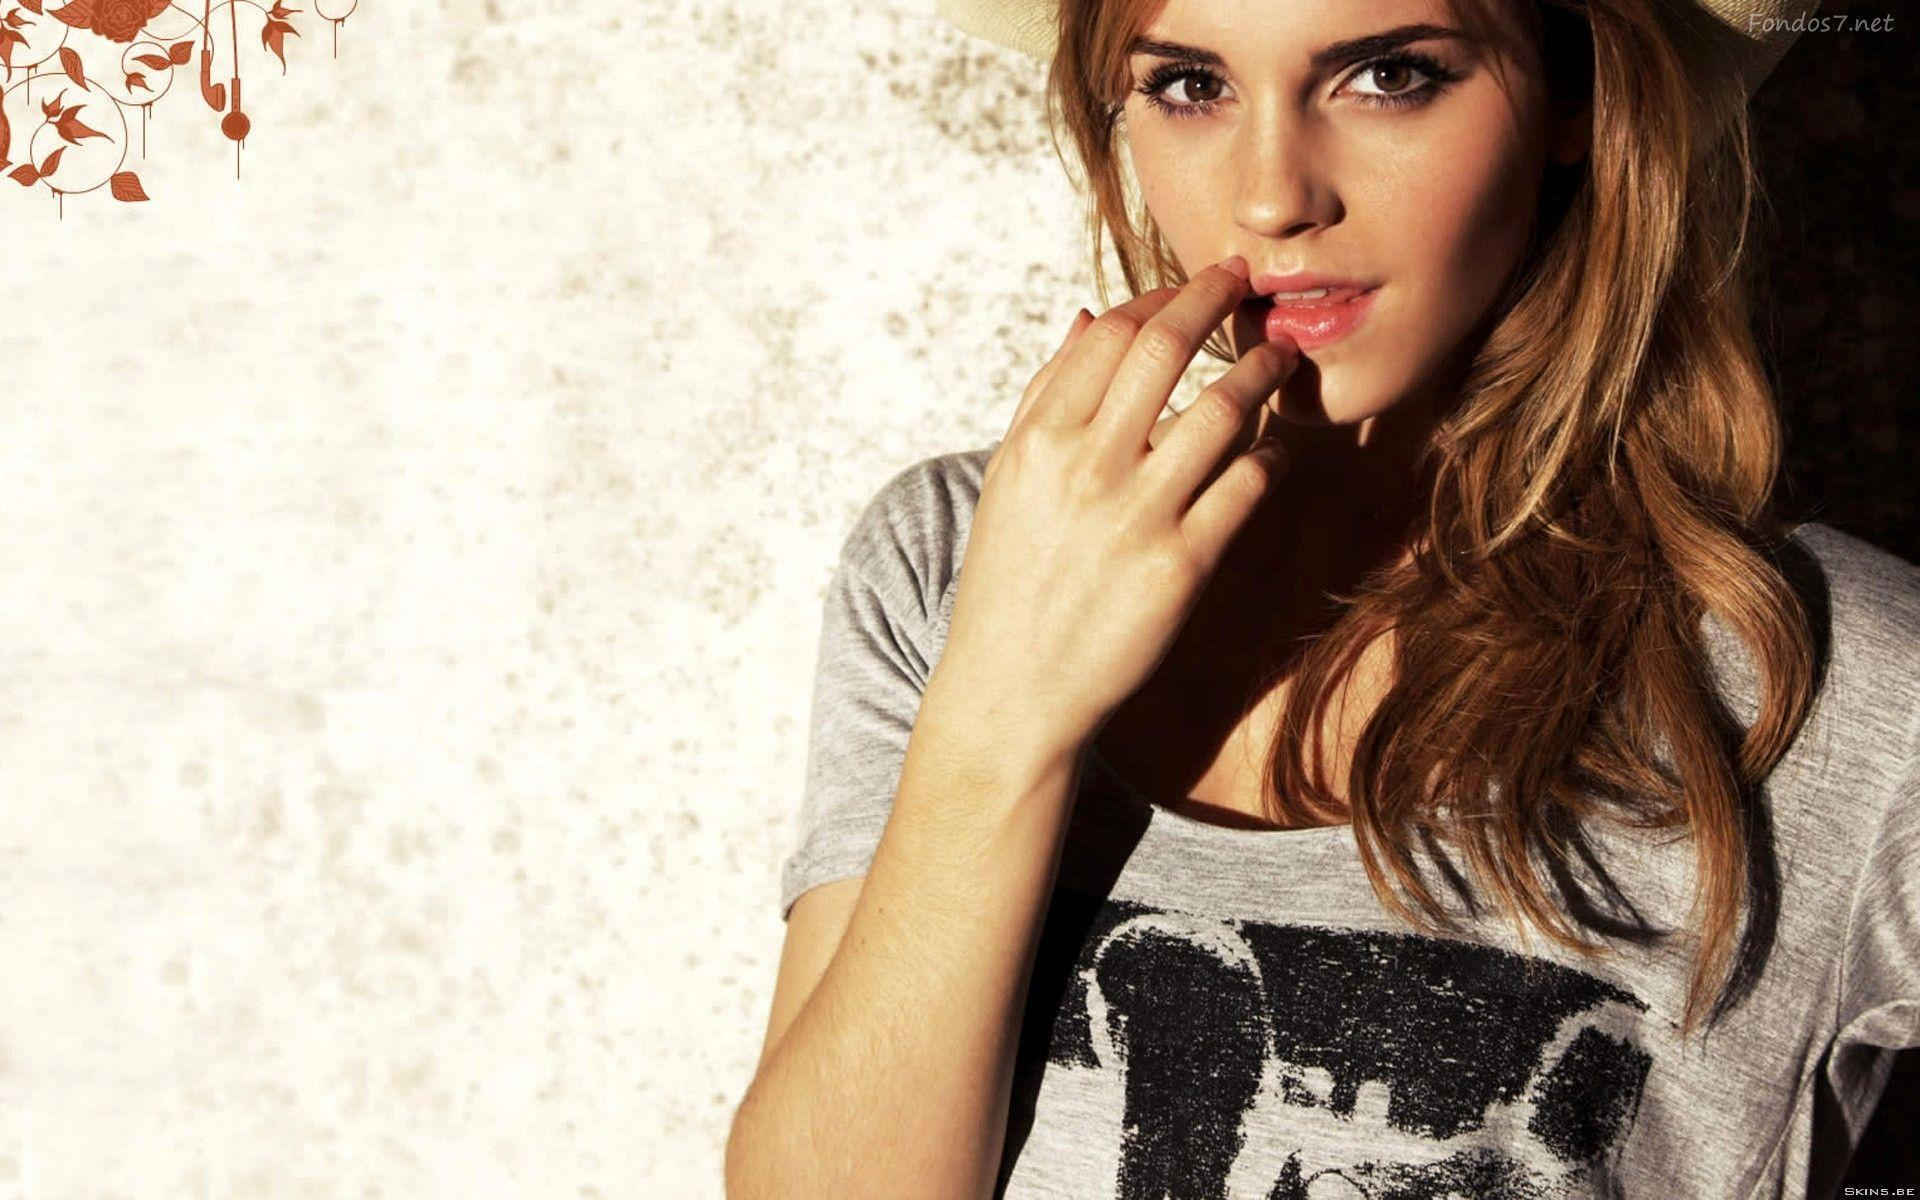 Emma Watson Wallpaper Hd 1920x1080 #1544 Wallpaper | lookwallpapers.